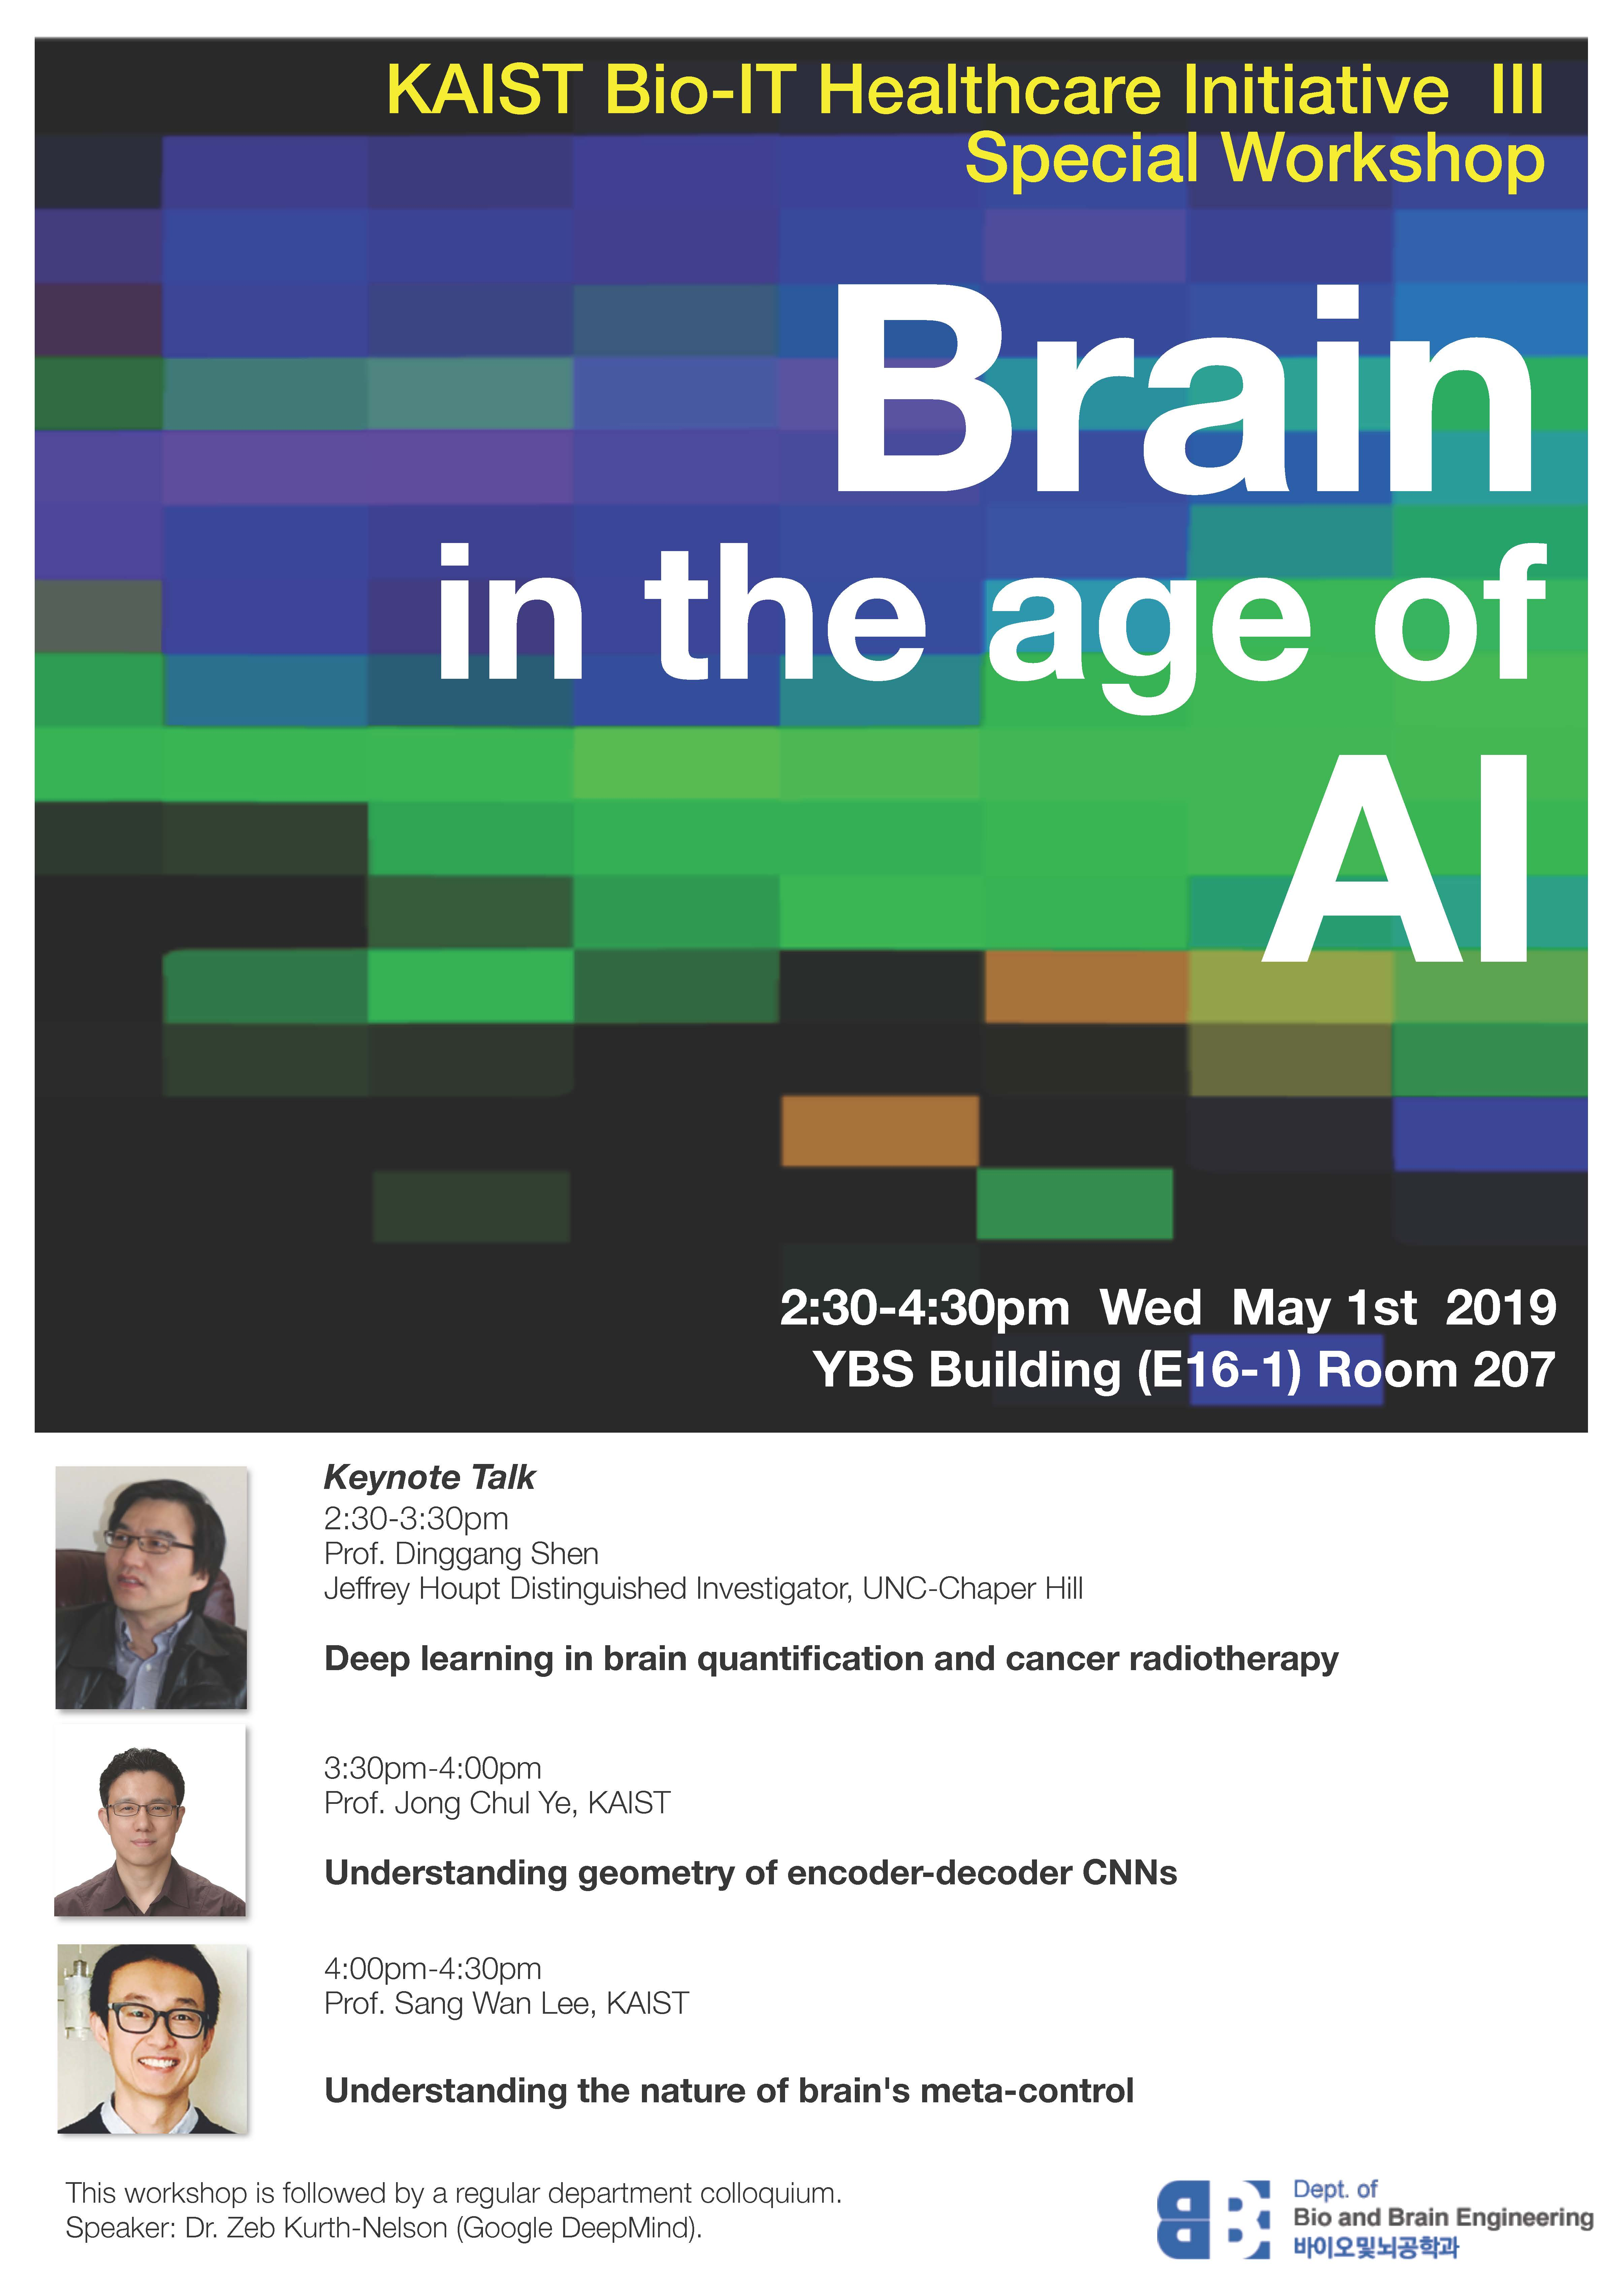 KAIST Bio-IT Healthcare Initiative III - Special Workshop(Brain in the age of AI).jpg